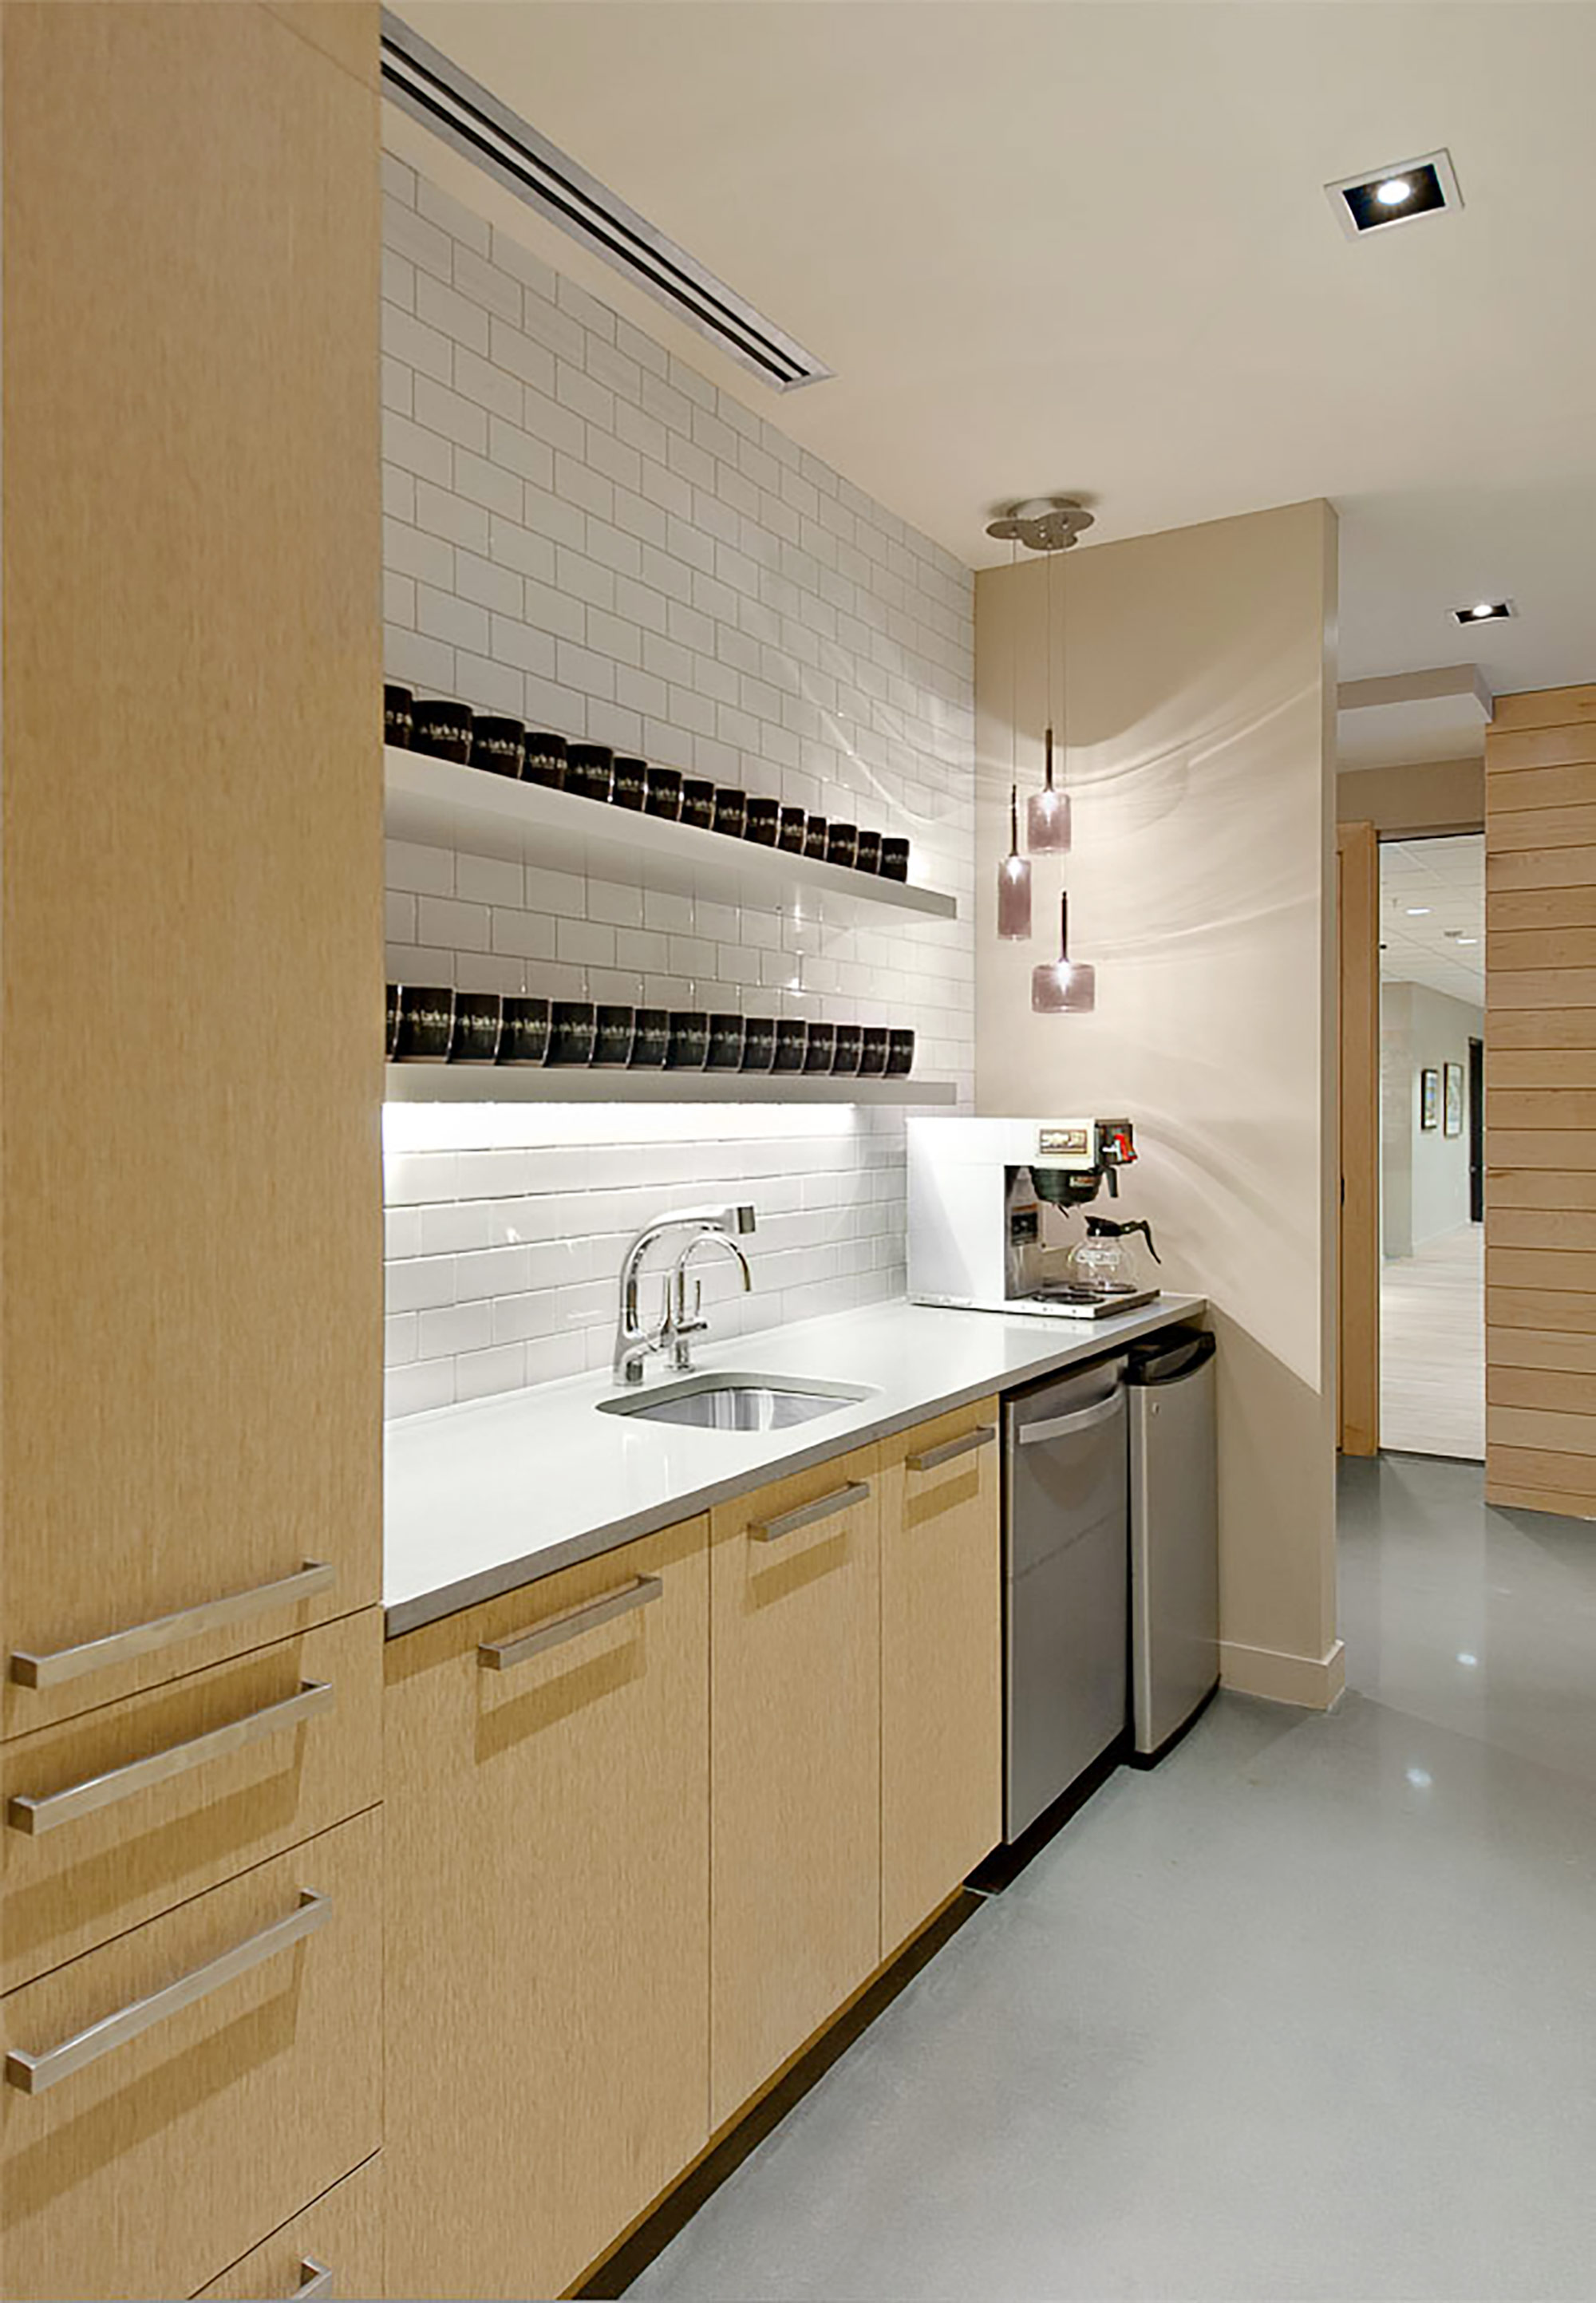 interior-design-legal-office-halifax-kitchen.jpg